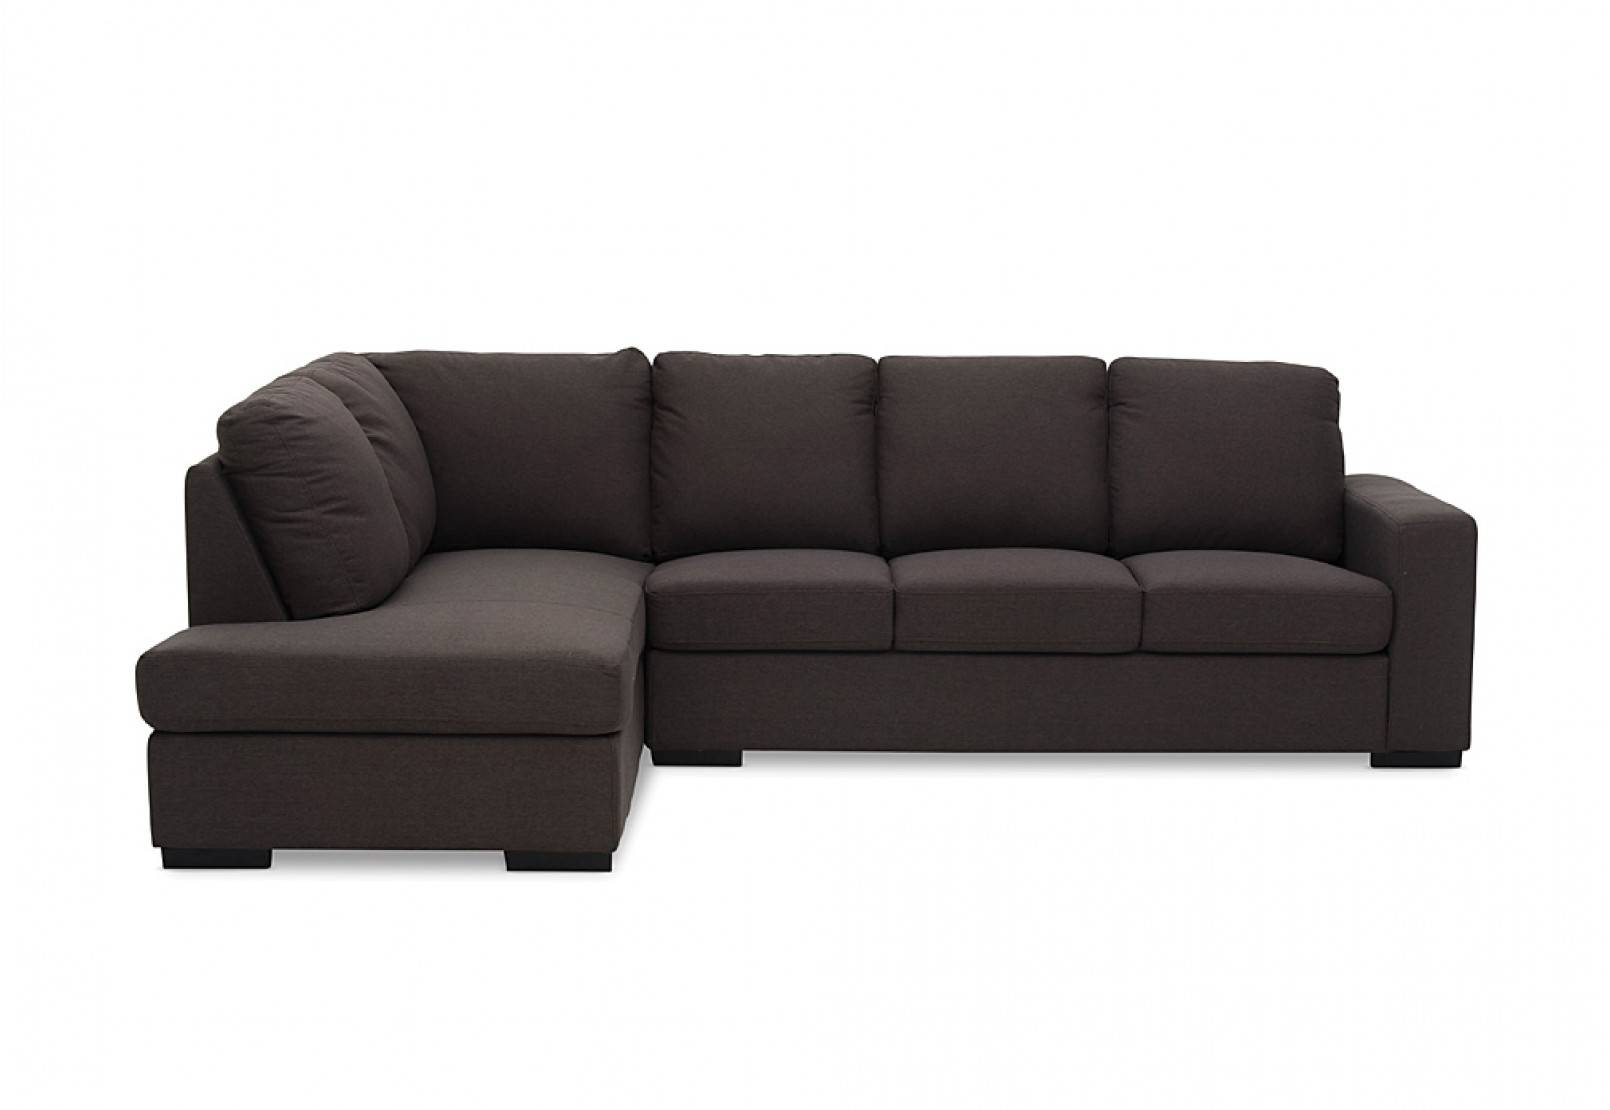 Nixon Fabric 4 Seater Sofa With Chaise | Super A-Mart for 4 Seater Couch (Image 29 of 30)